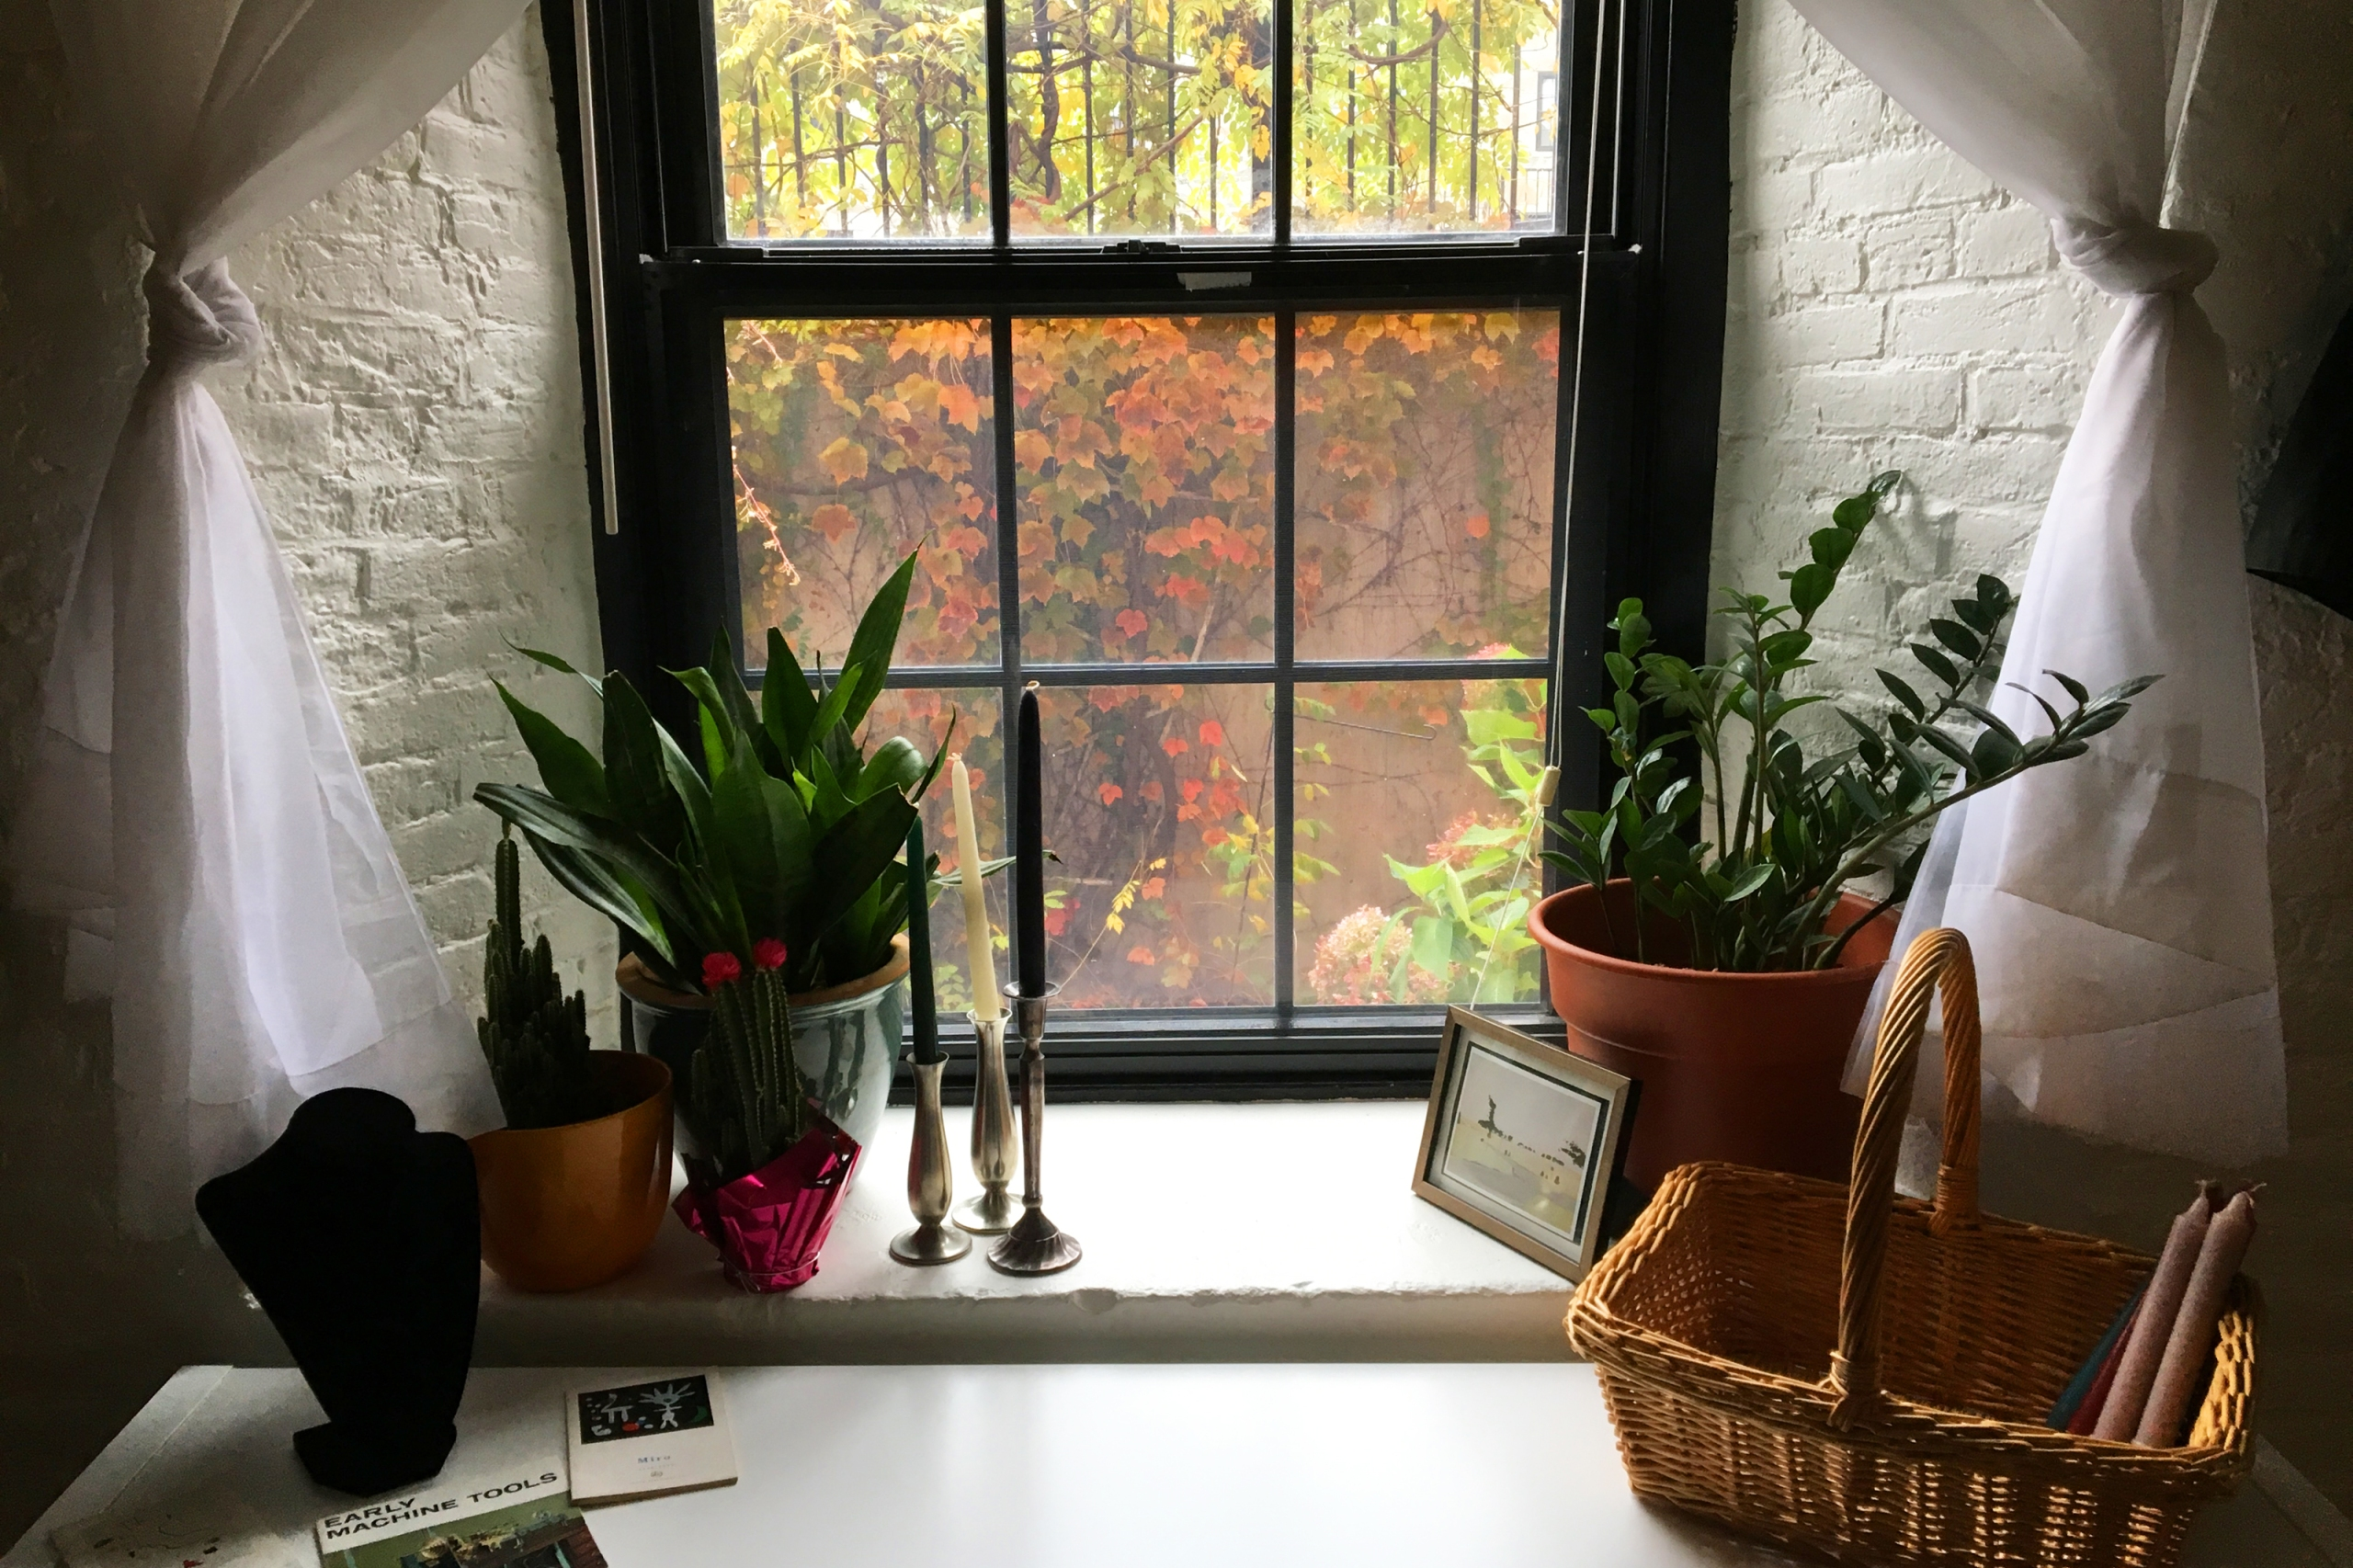 Decorated white window sill looking out to fall foliage